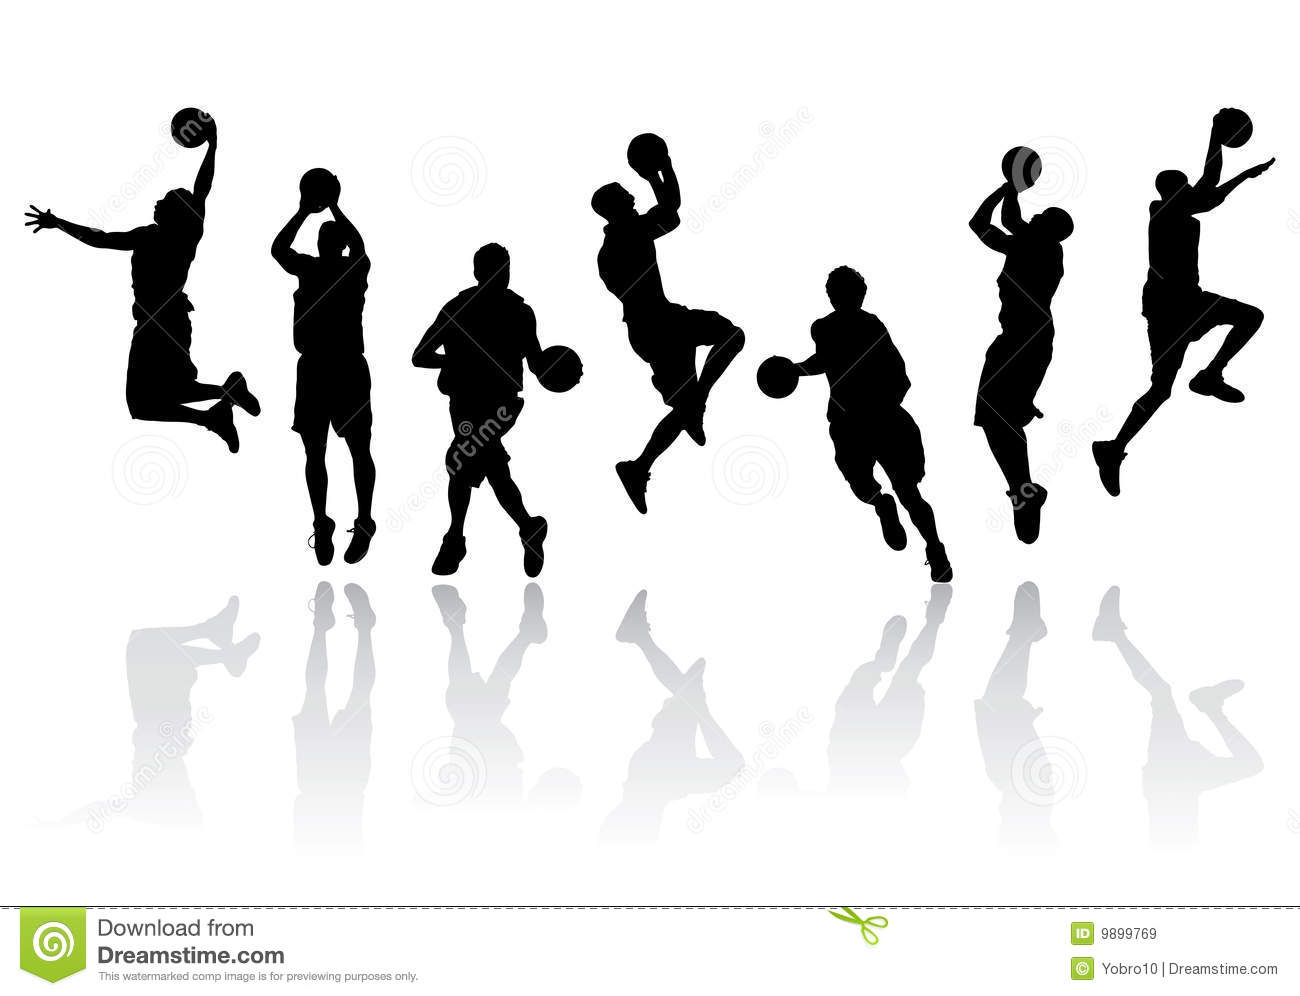 Vector Basketball Player Silhouettes Stock Illustration - Image: 9899769